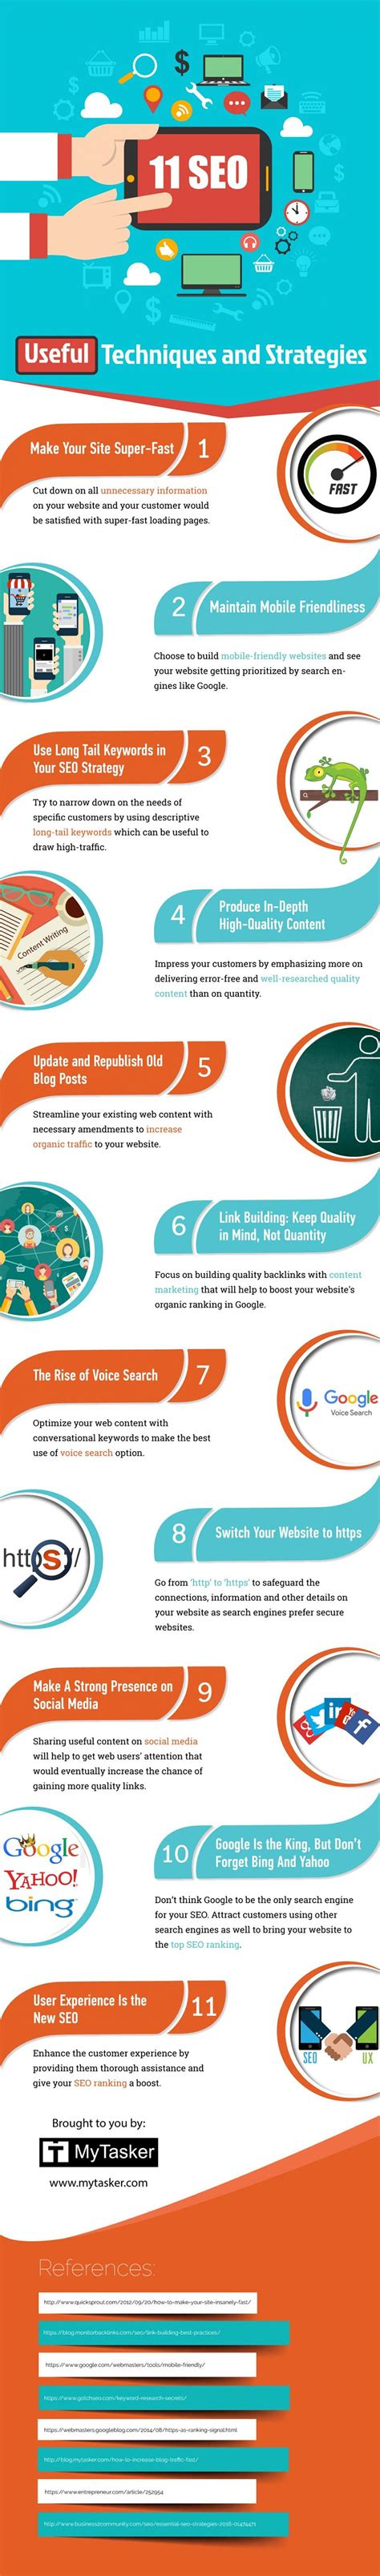 seo techniques 11 seo techniques to rank higher on infographic